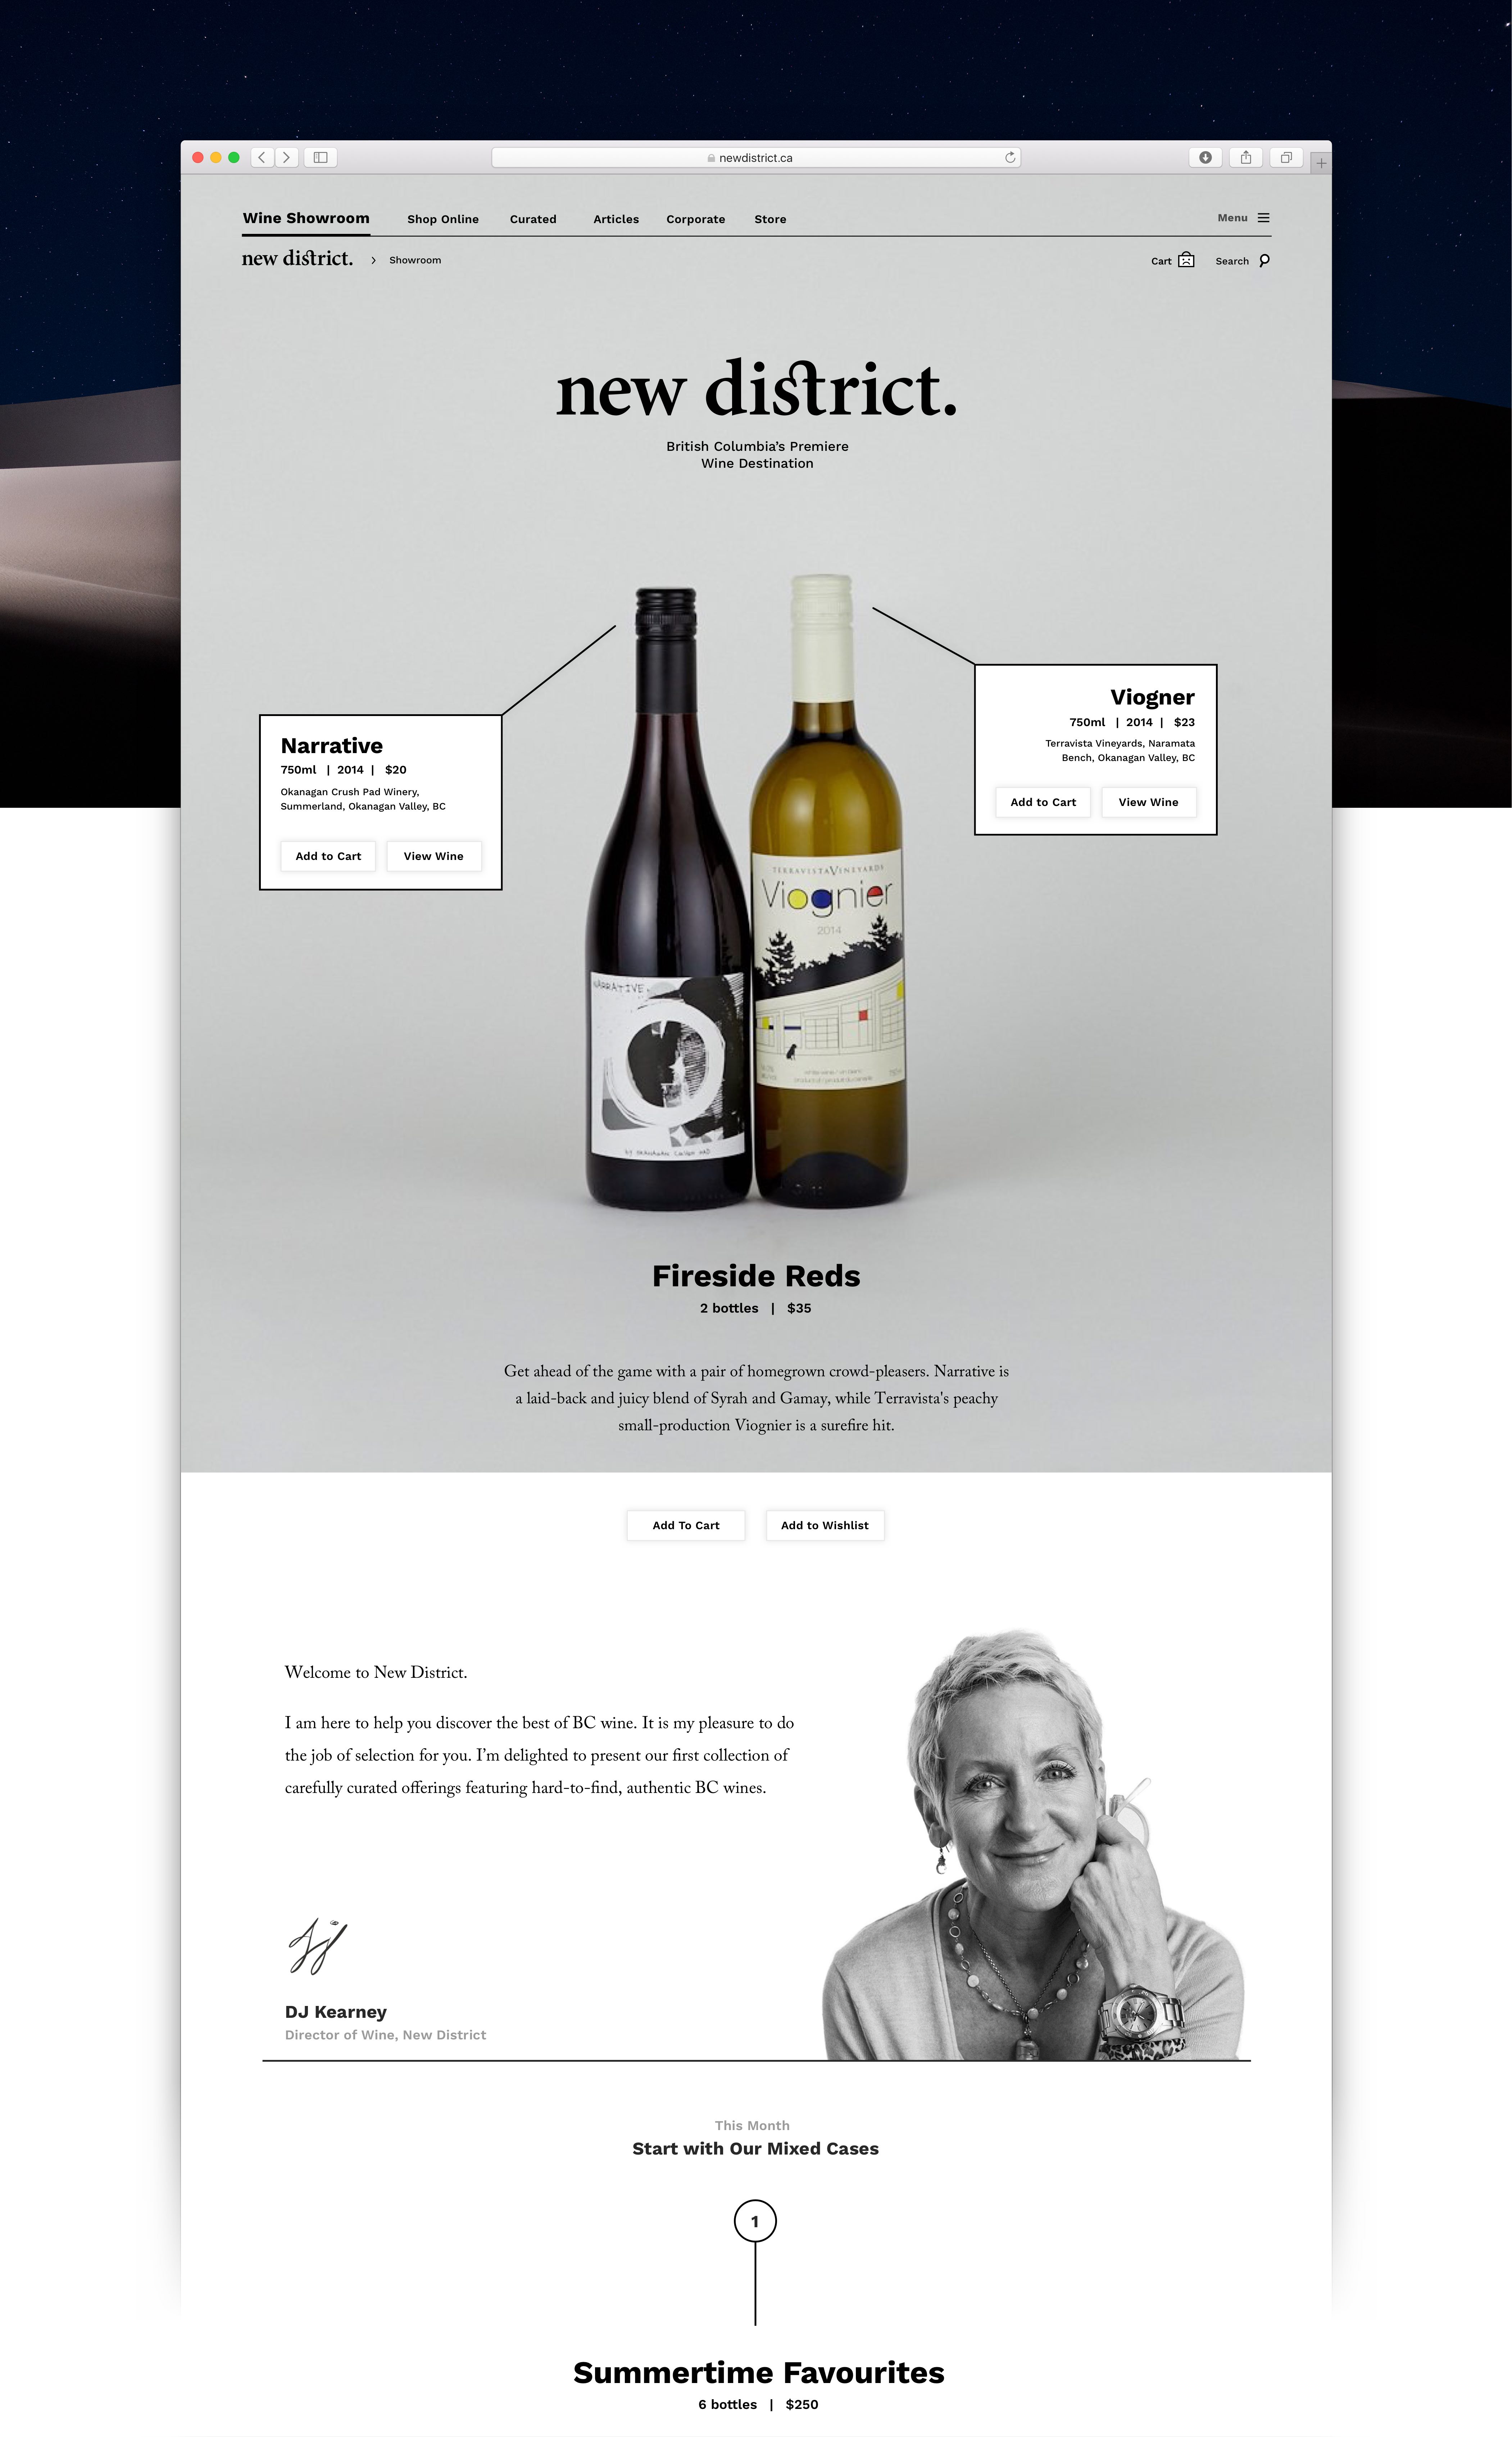 Showroom home page showcase premium red wine collection and a message for DJ Keaney Director of Wine at New District — by Dima Yagnyuk.